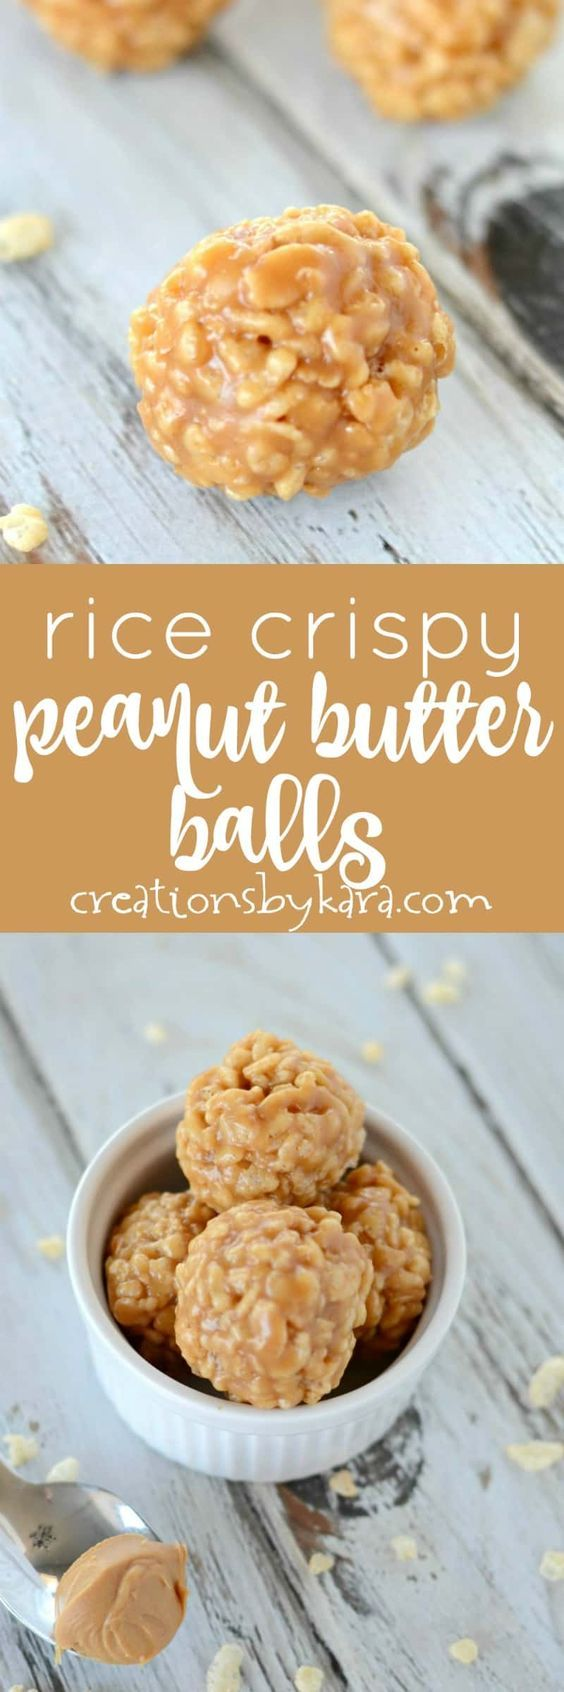 These simple peanut butter balls are easy to make, but hard to resist! They are chewy, crunchy, and packed with peanut butter flavor.